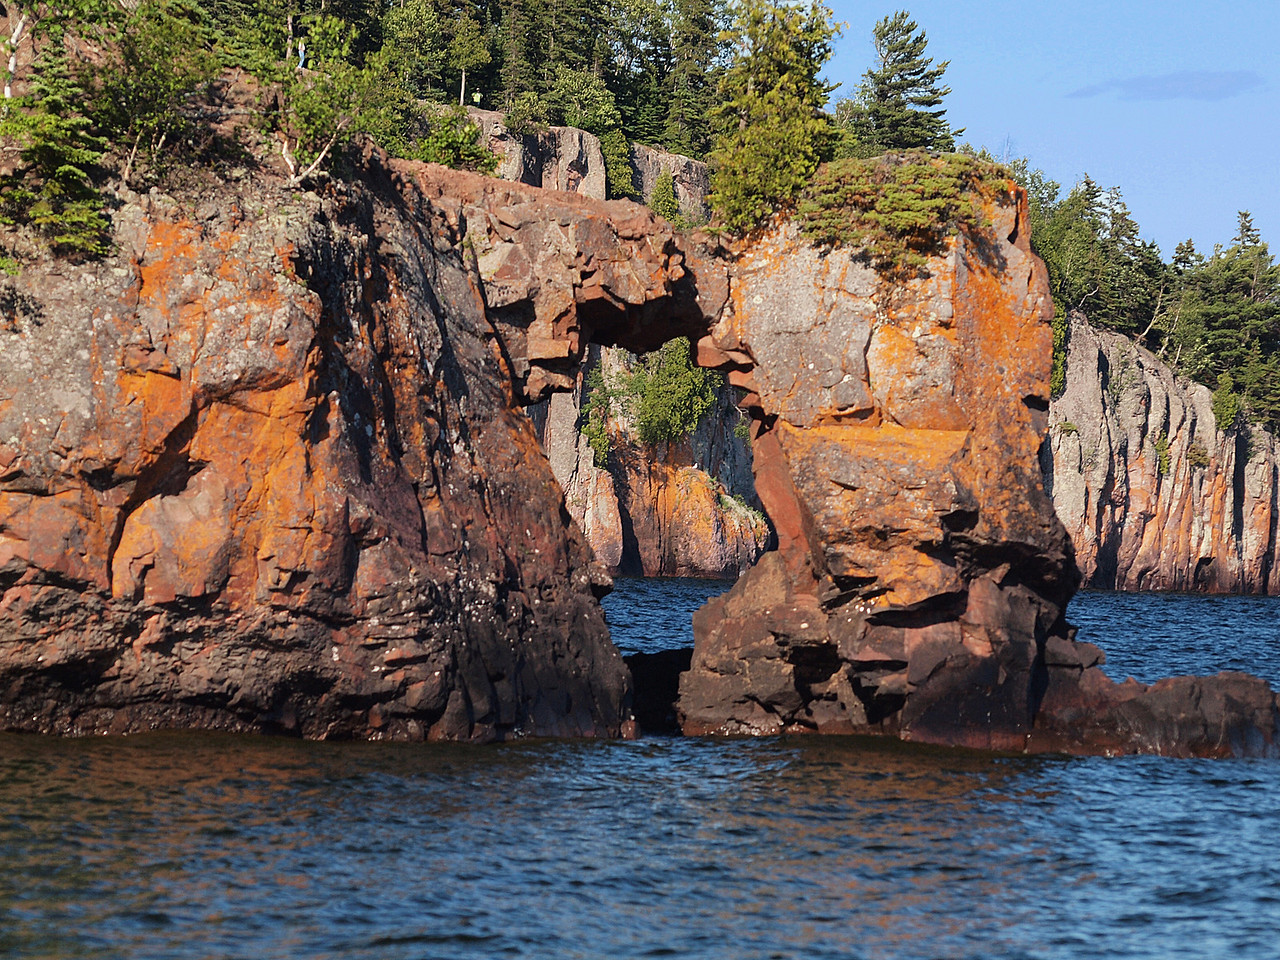 Shovel Point at Tettegouche State Park